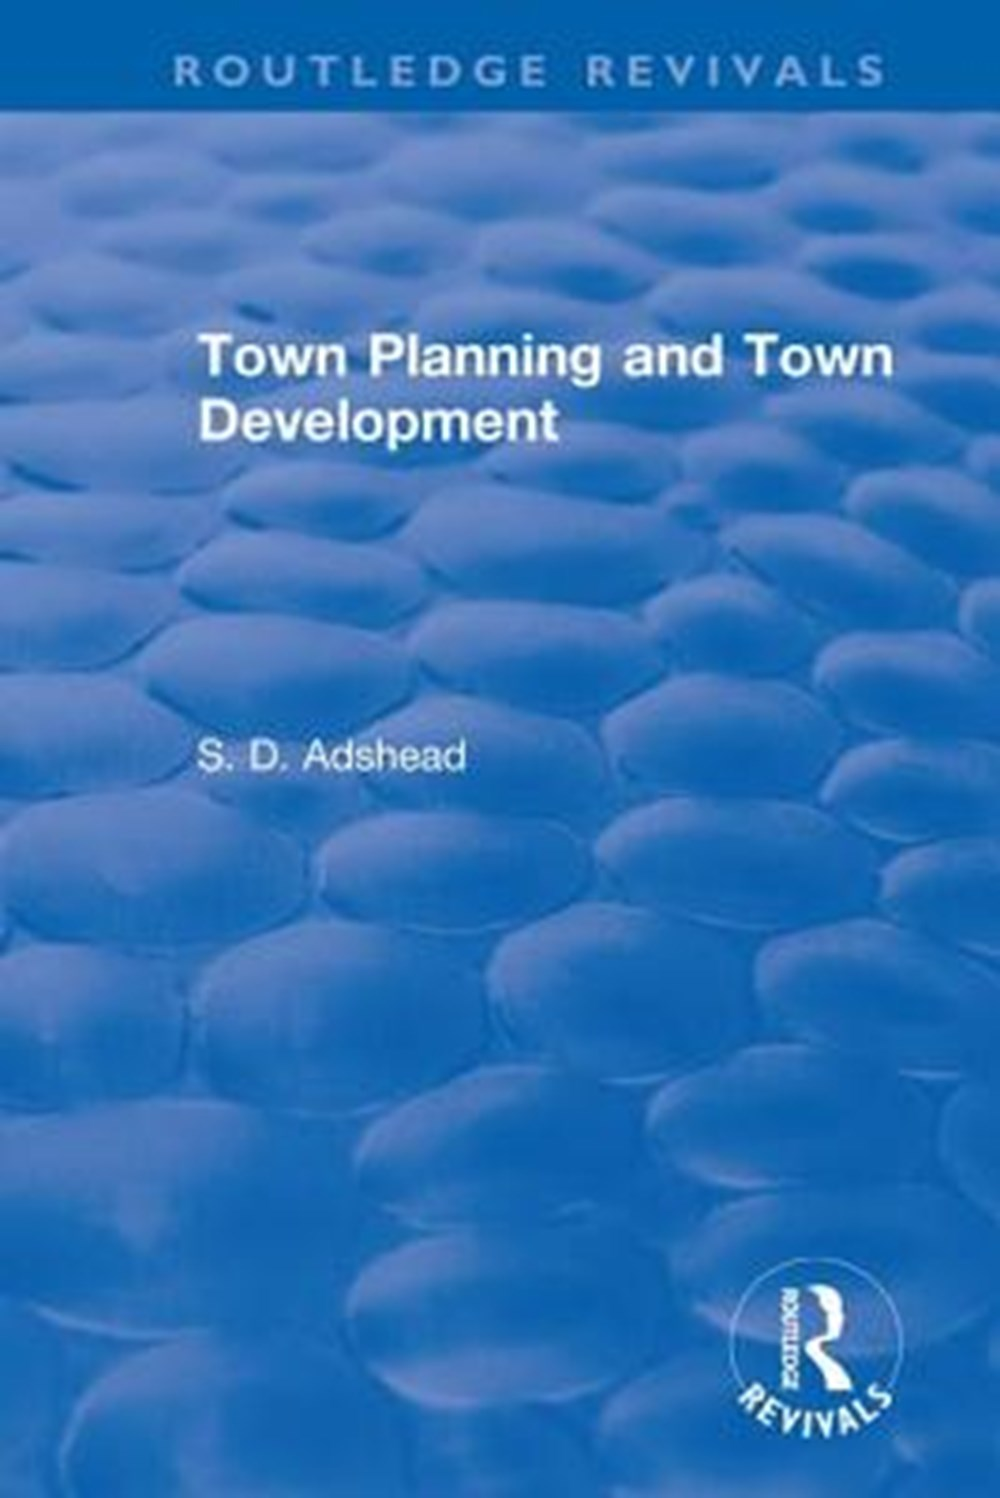 Revival Town Planning and Town Development (1923)